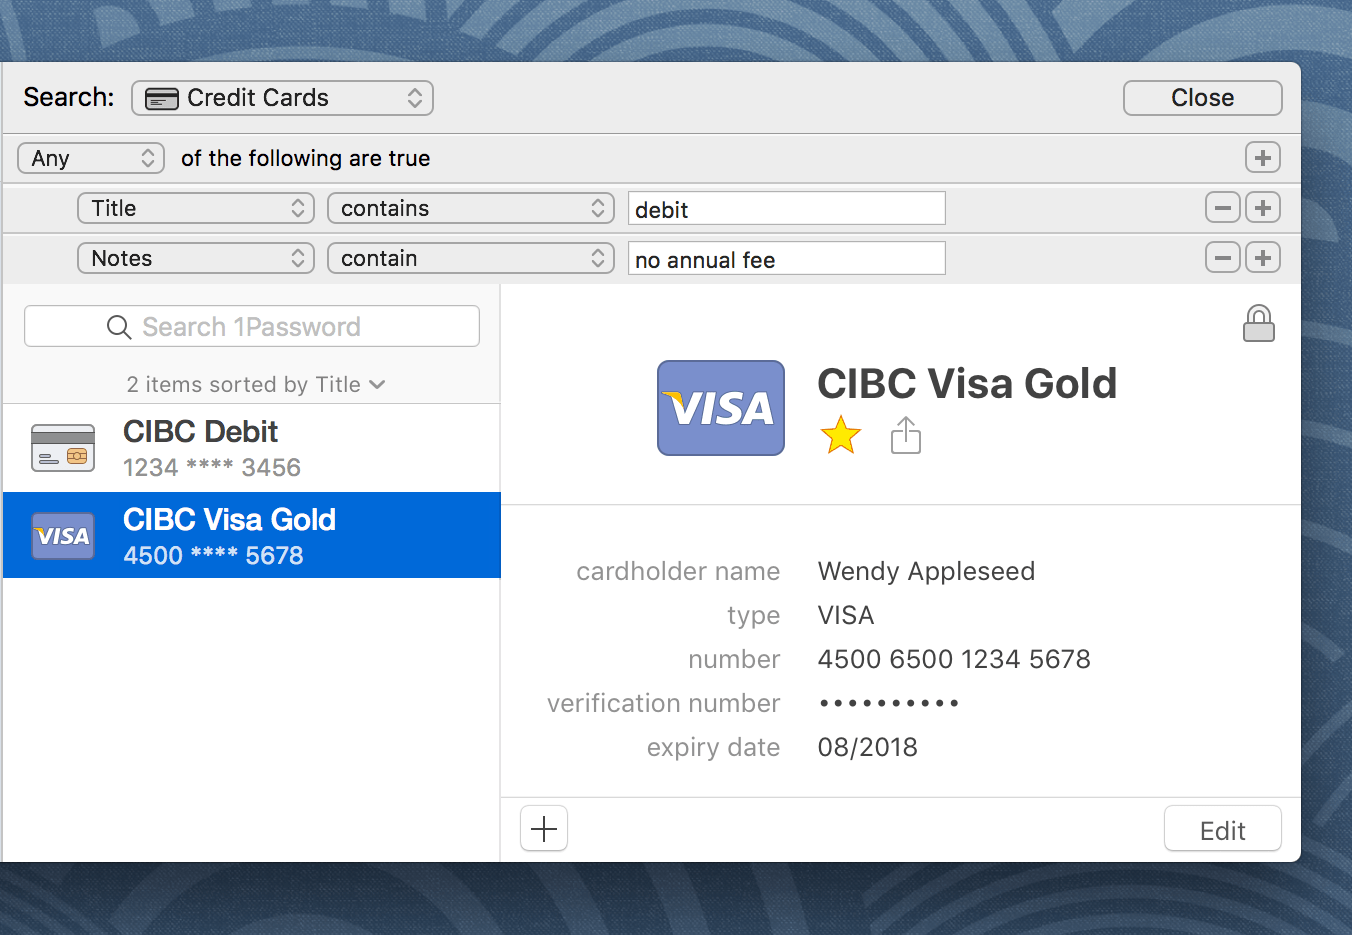 An advanced search for Credit Card items with either 'debit' in the title or 'no annual fee' in the notes